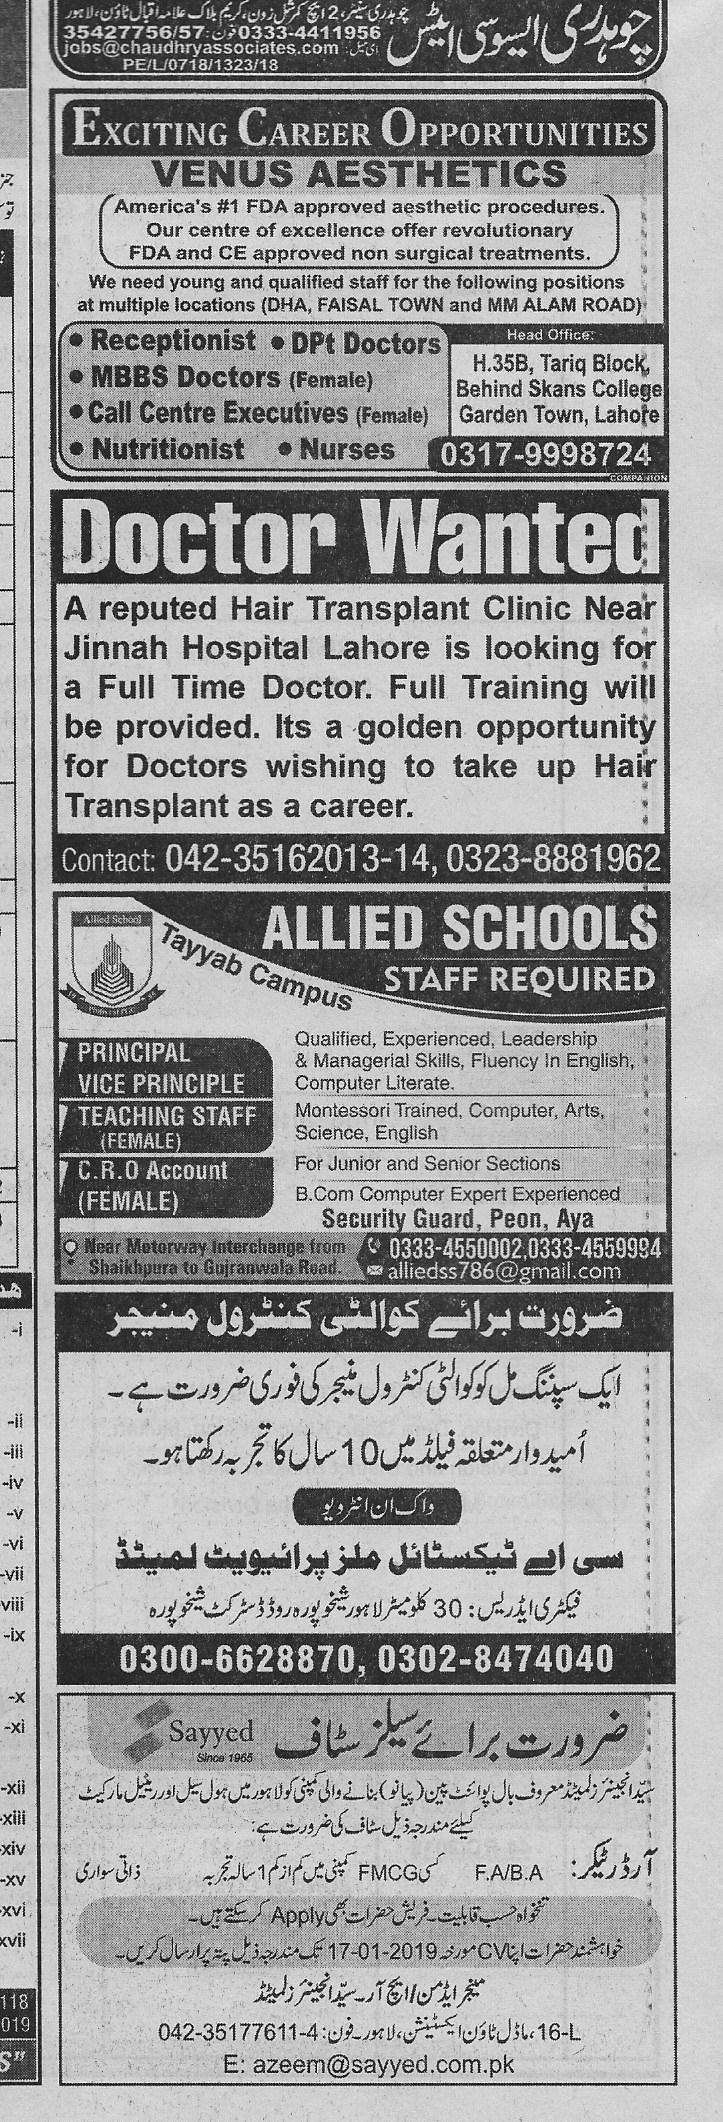 Jang Classified Jobs Post - JobsRead